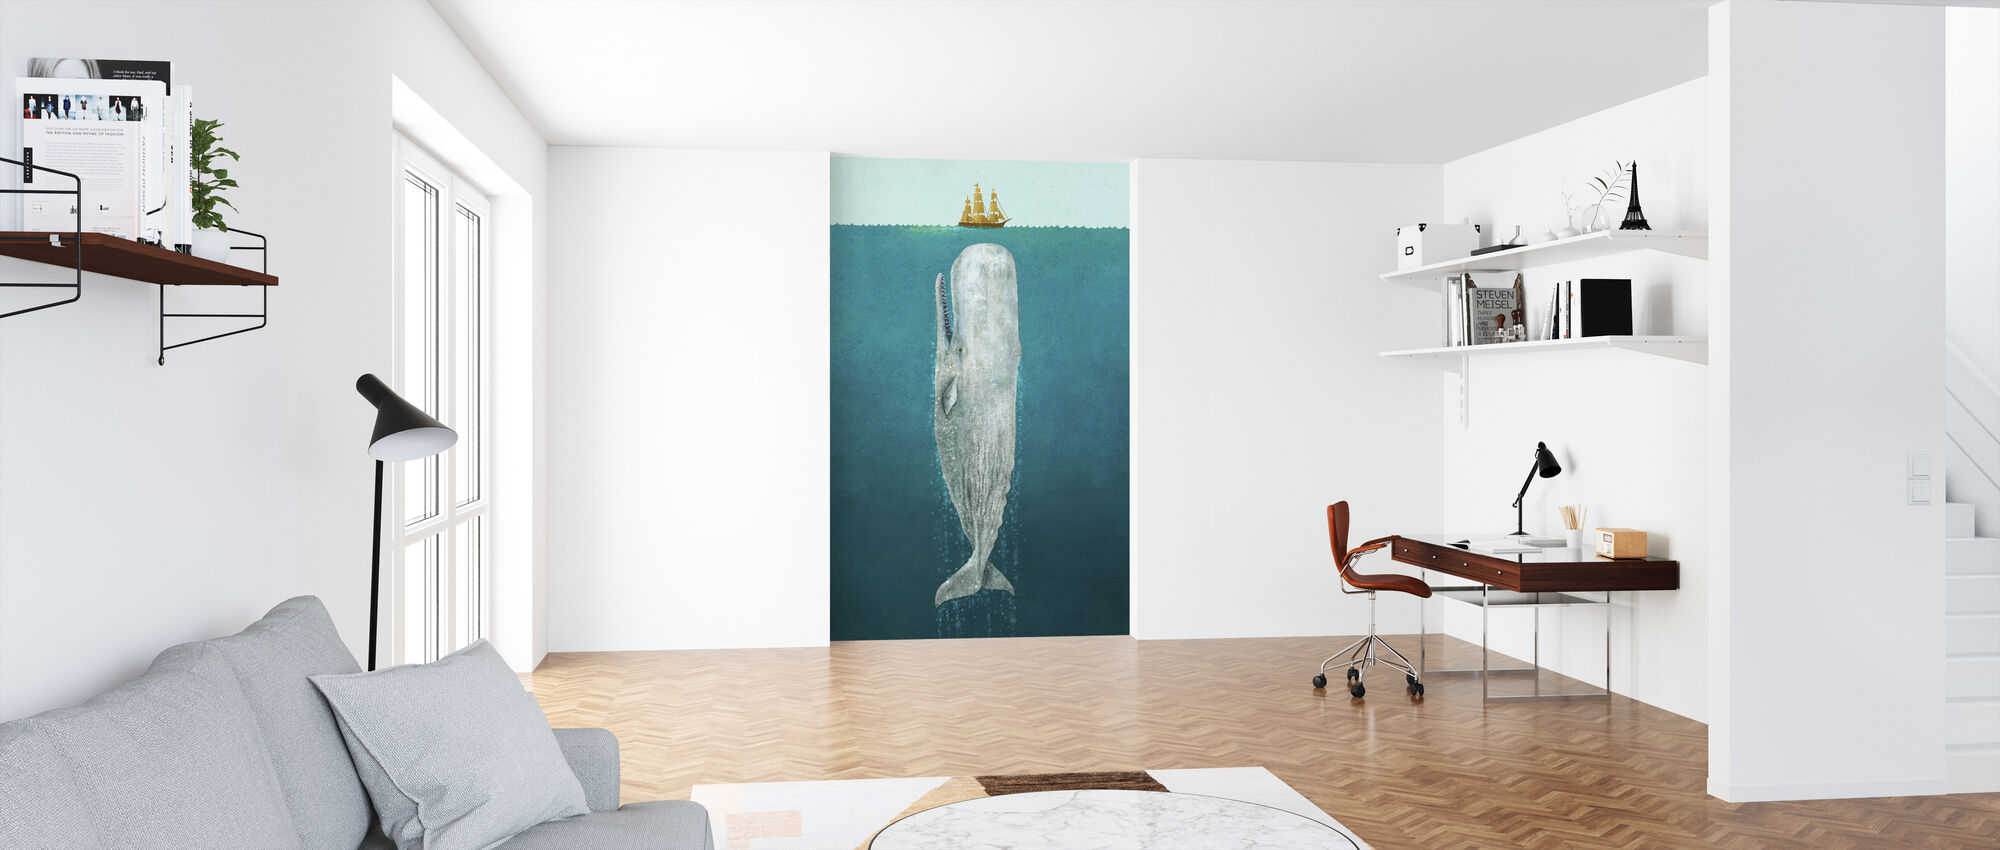 Whale - Wallpaper - Office